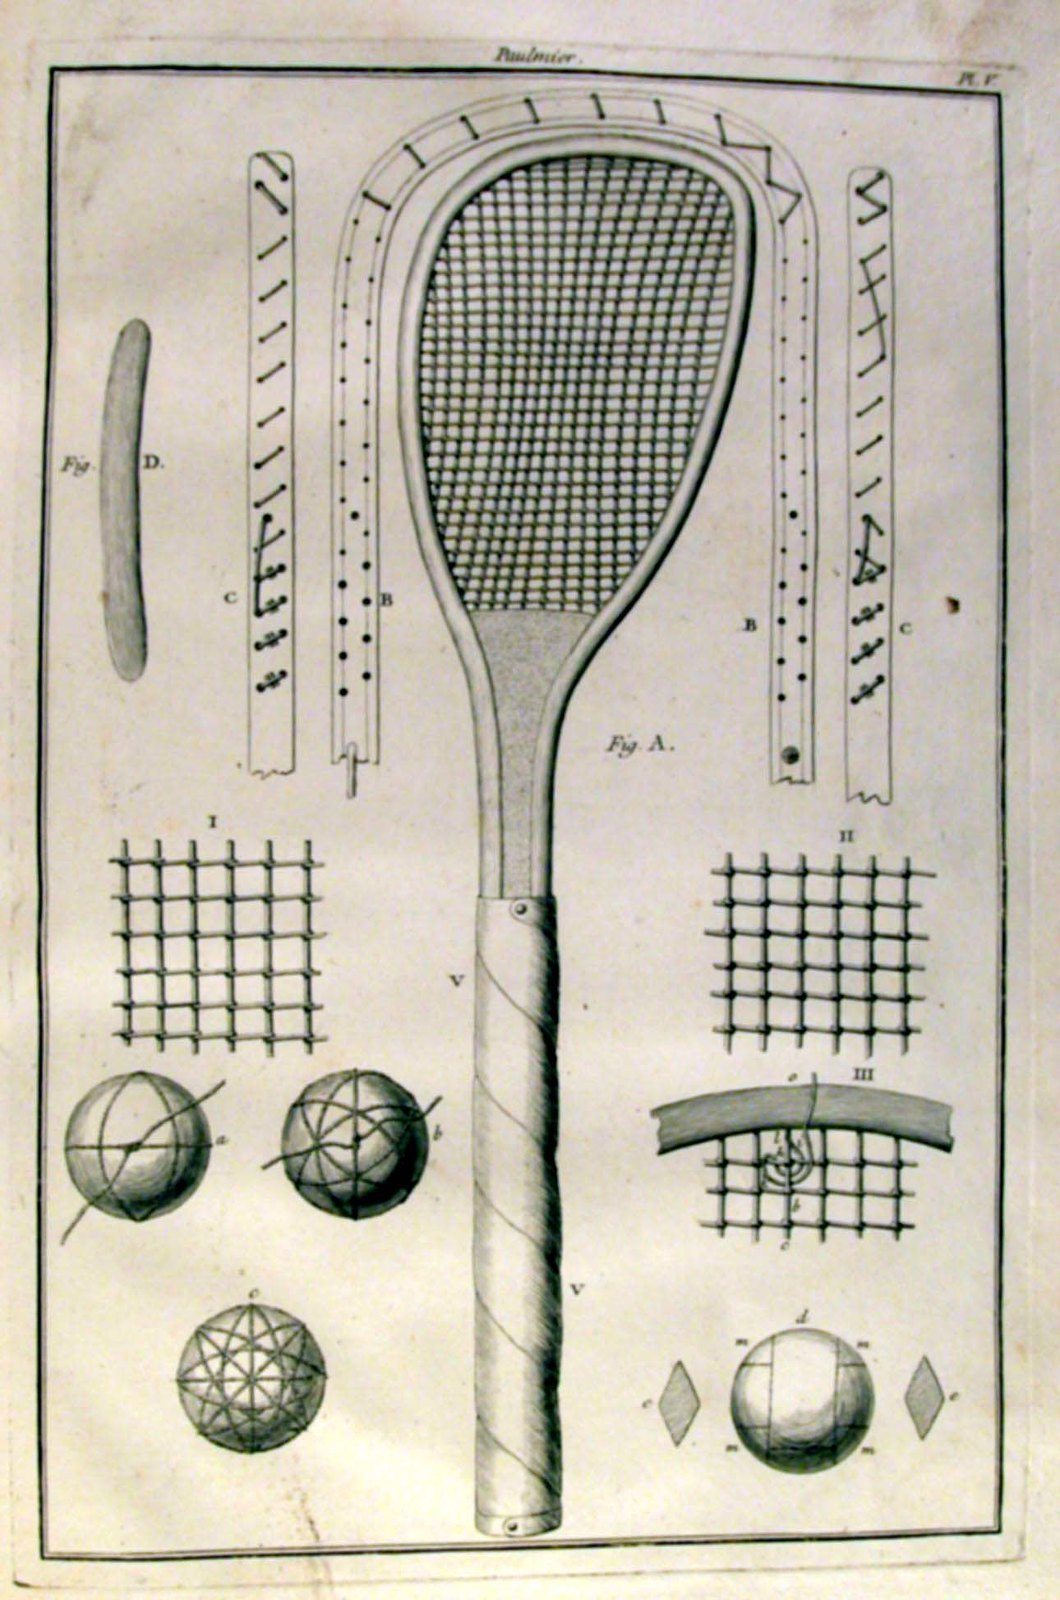 Creation of a tennis racket in the 18th century